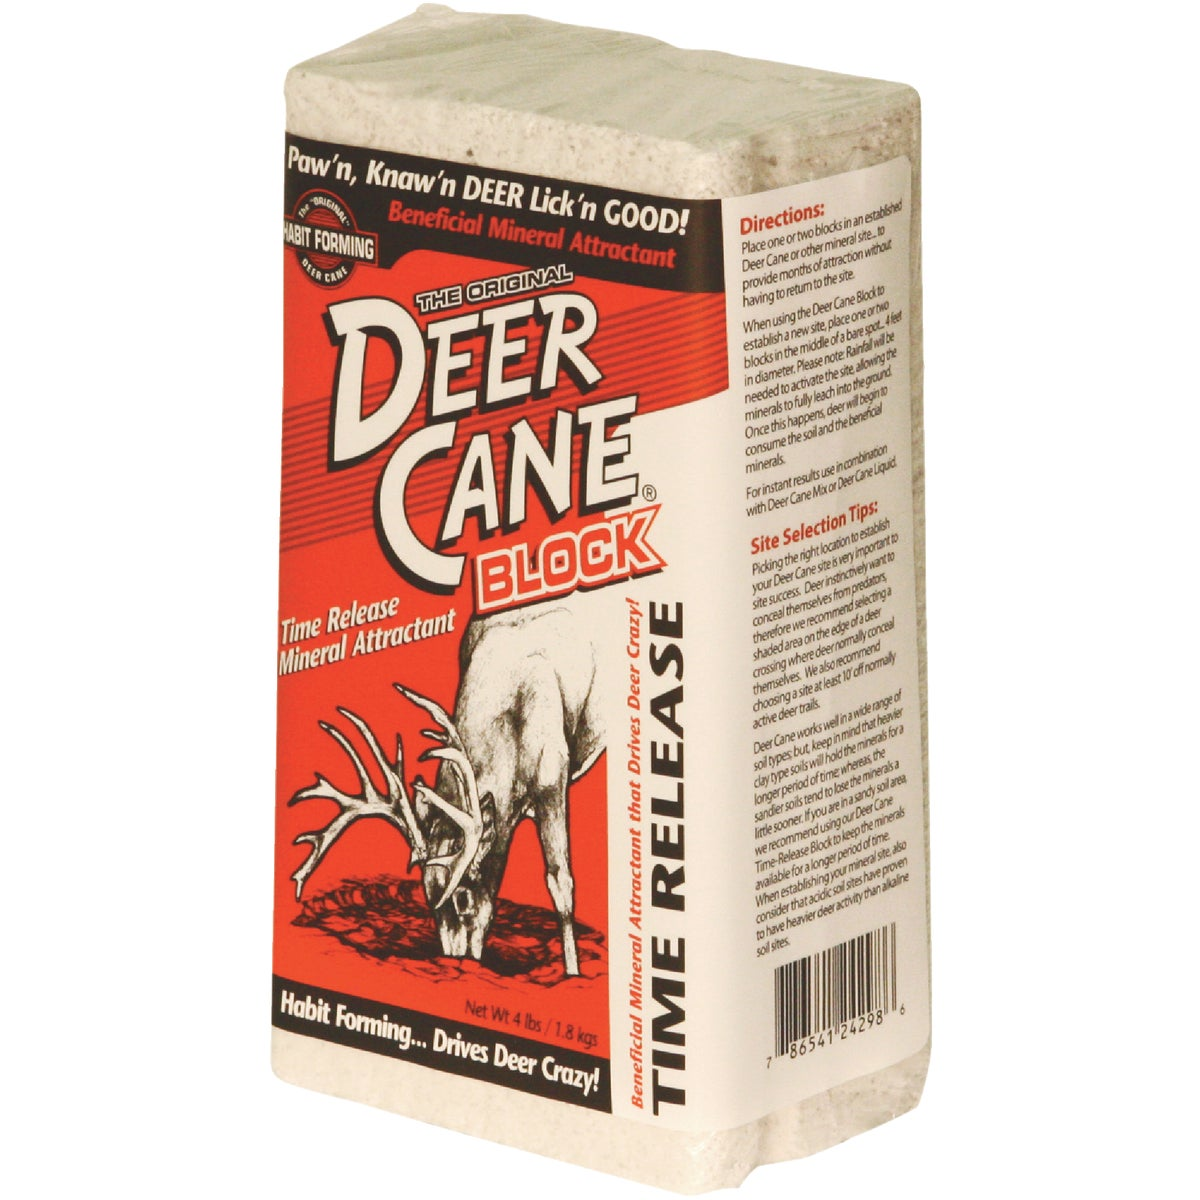 DEER CANE BLOCK - 24298 by Evolved Habitats